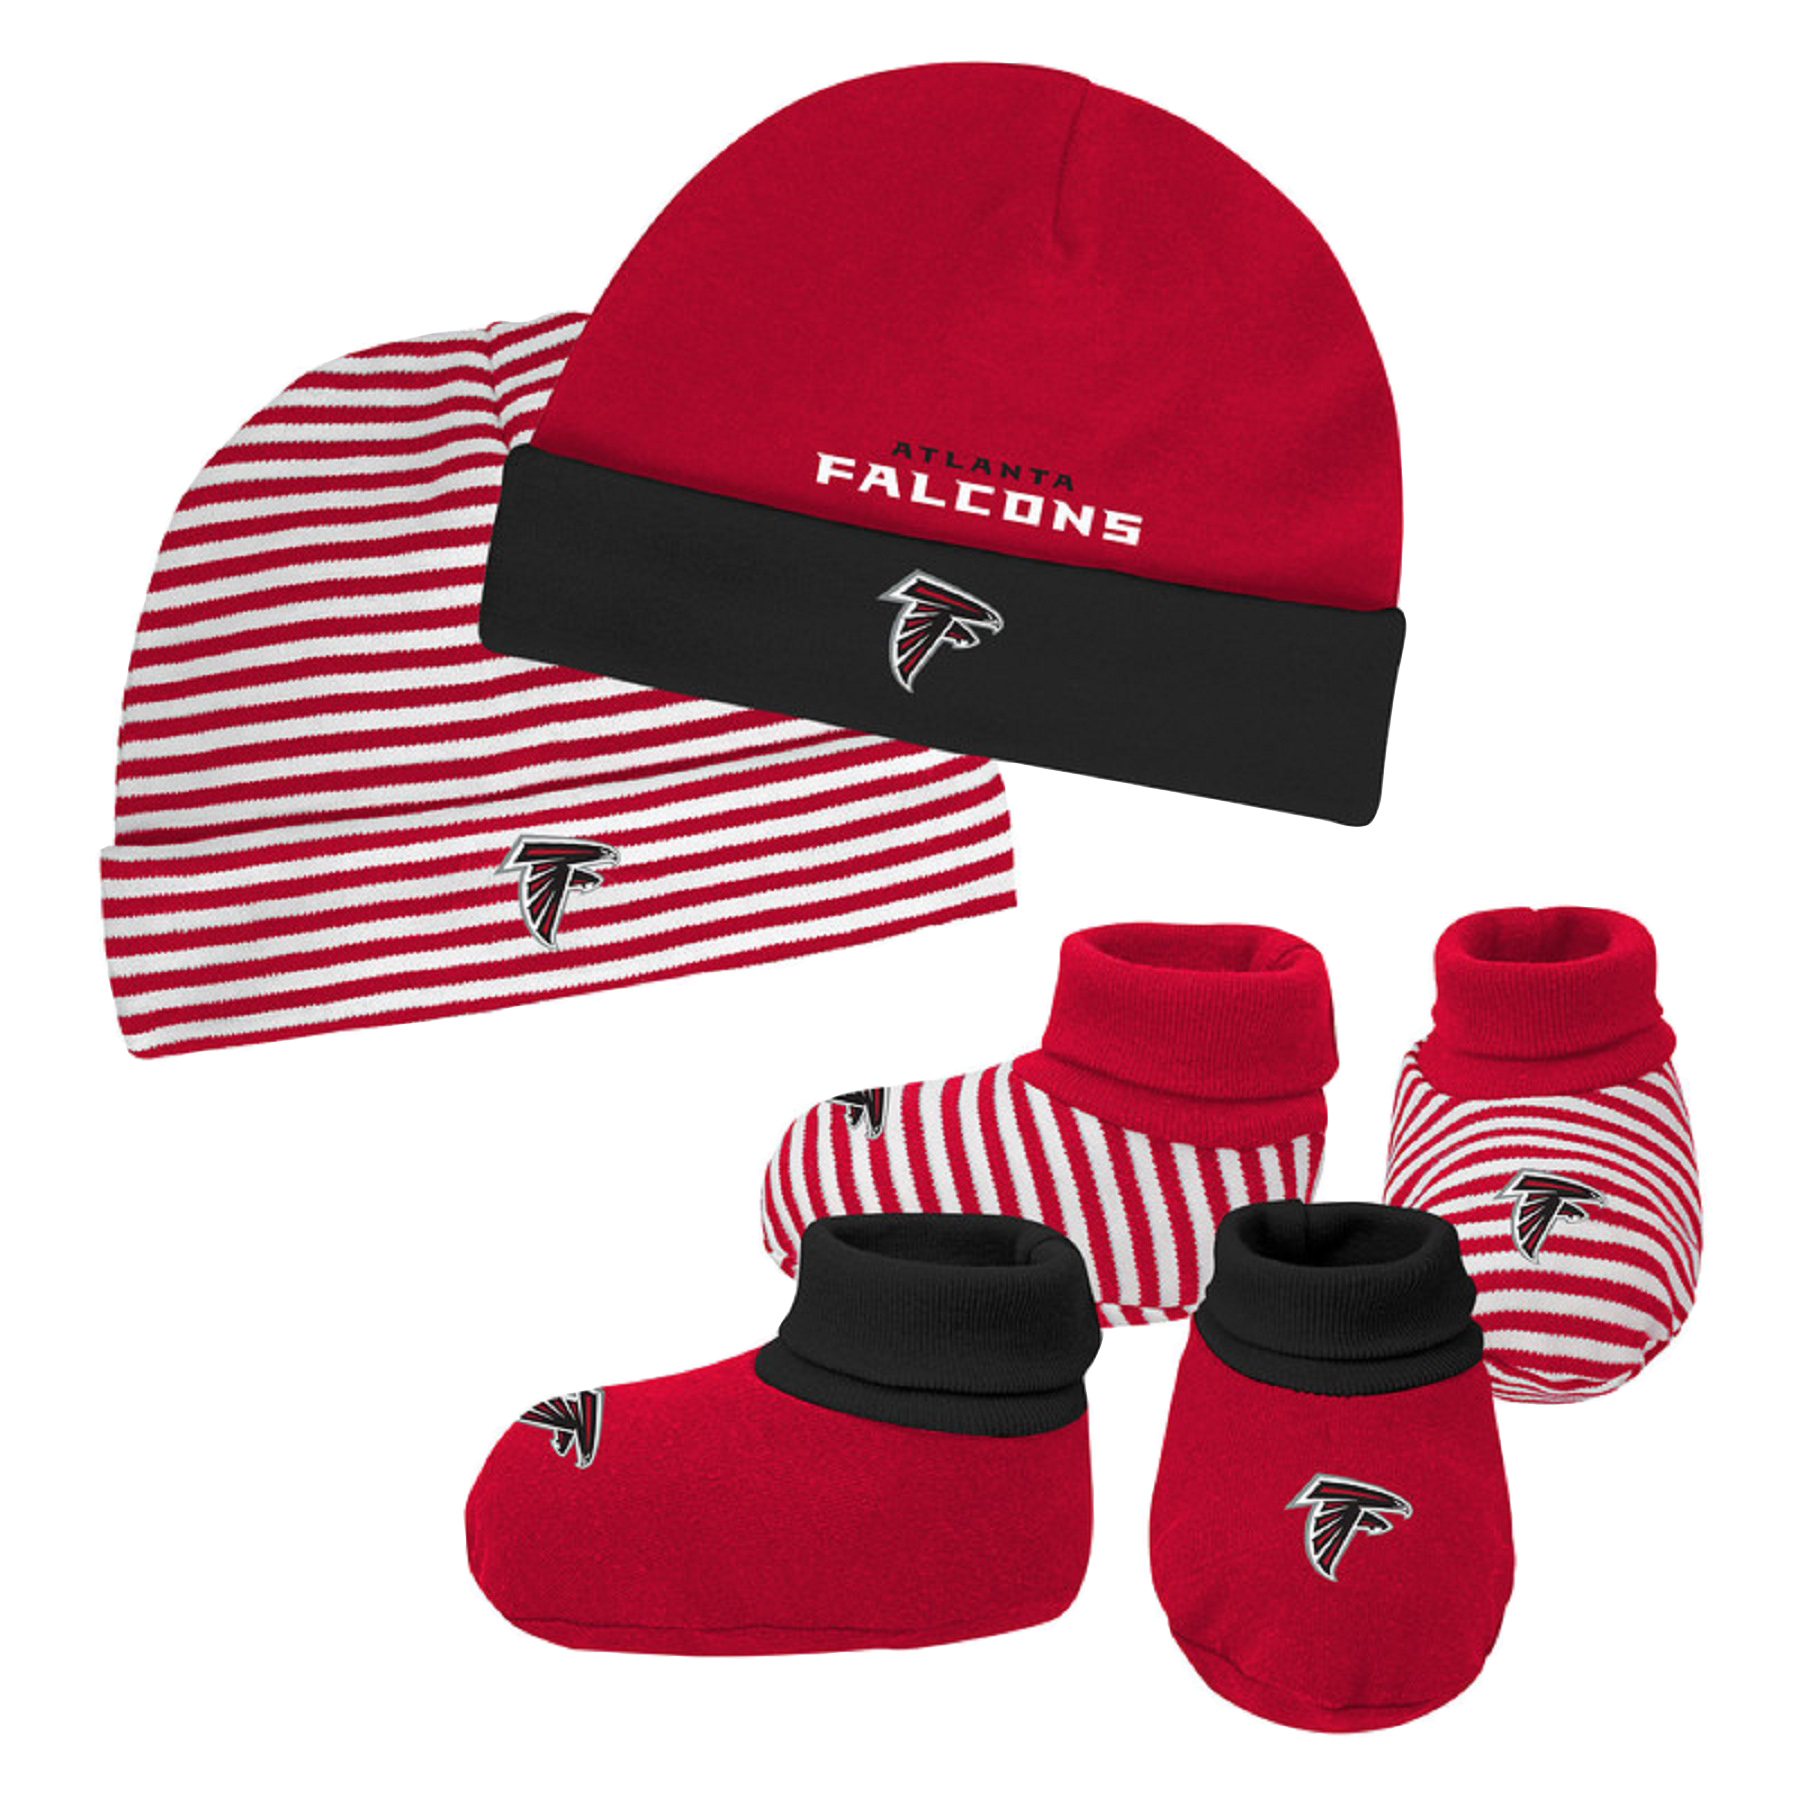 Newborn & Infant Red/Black Atlanta Falcons Cuffed Knit Hat & Booties Set - Newborn